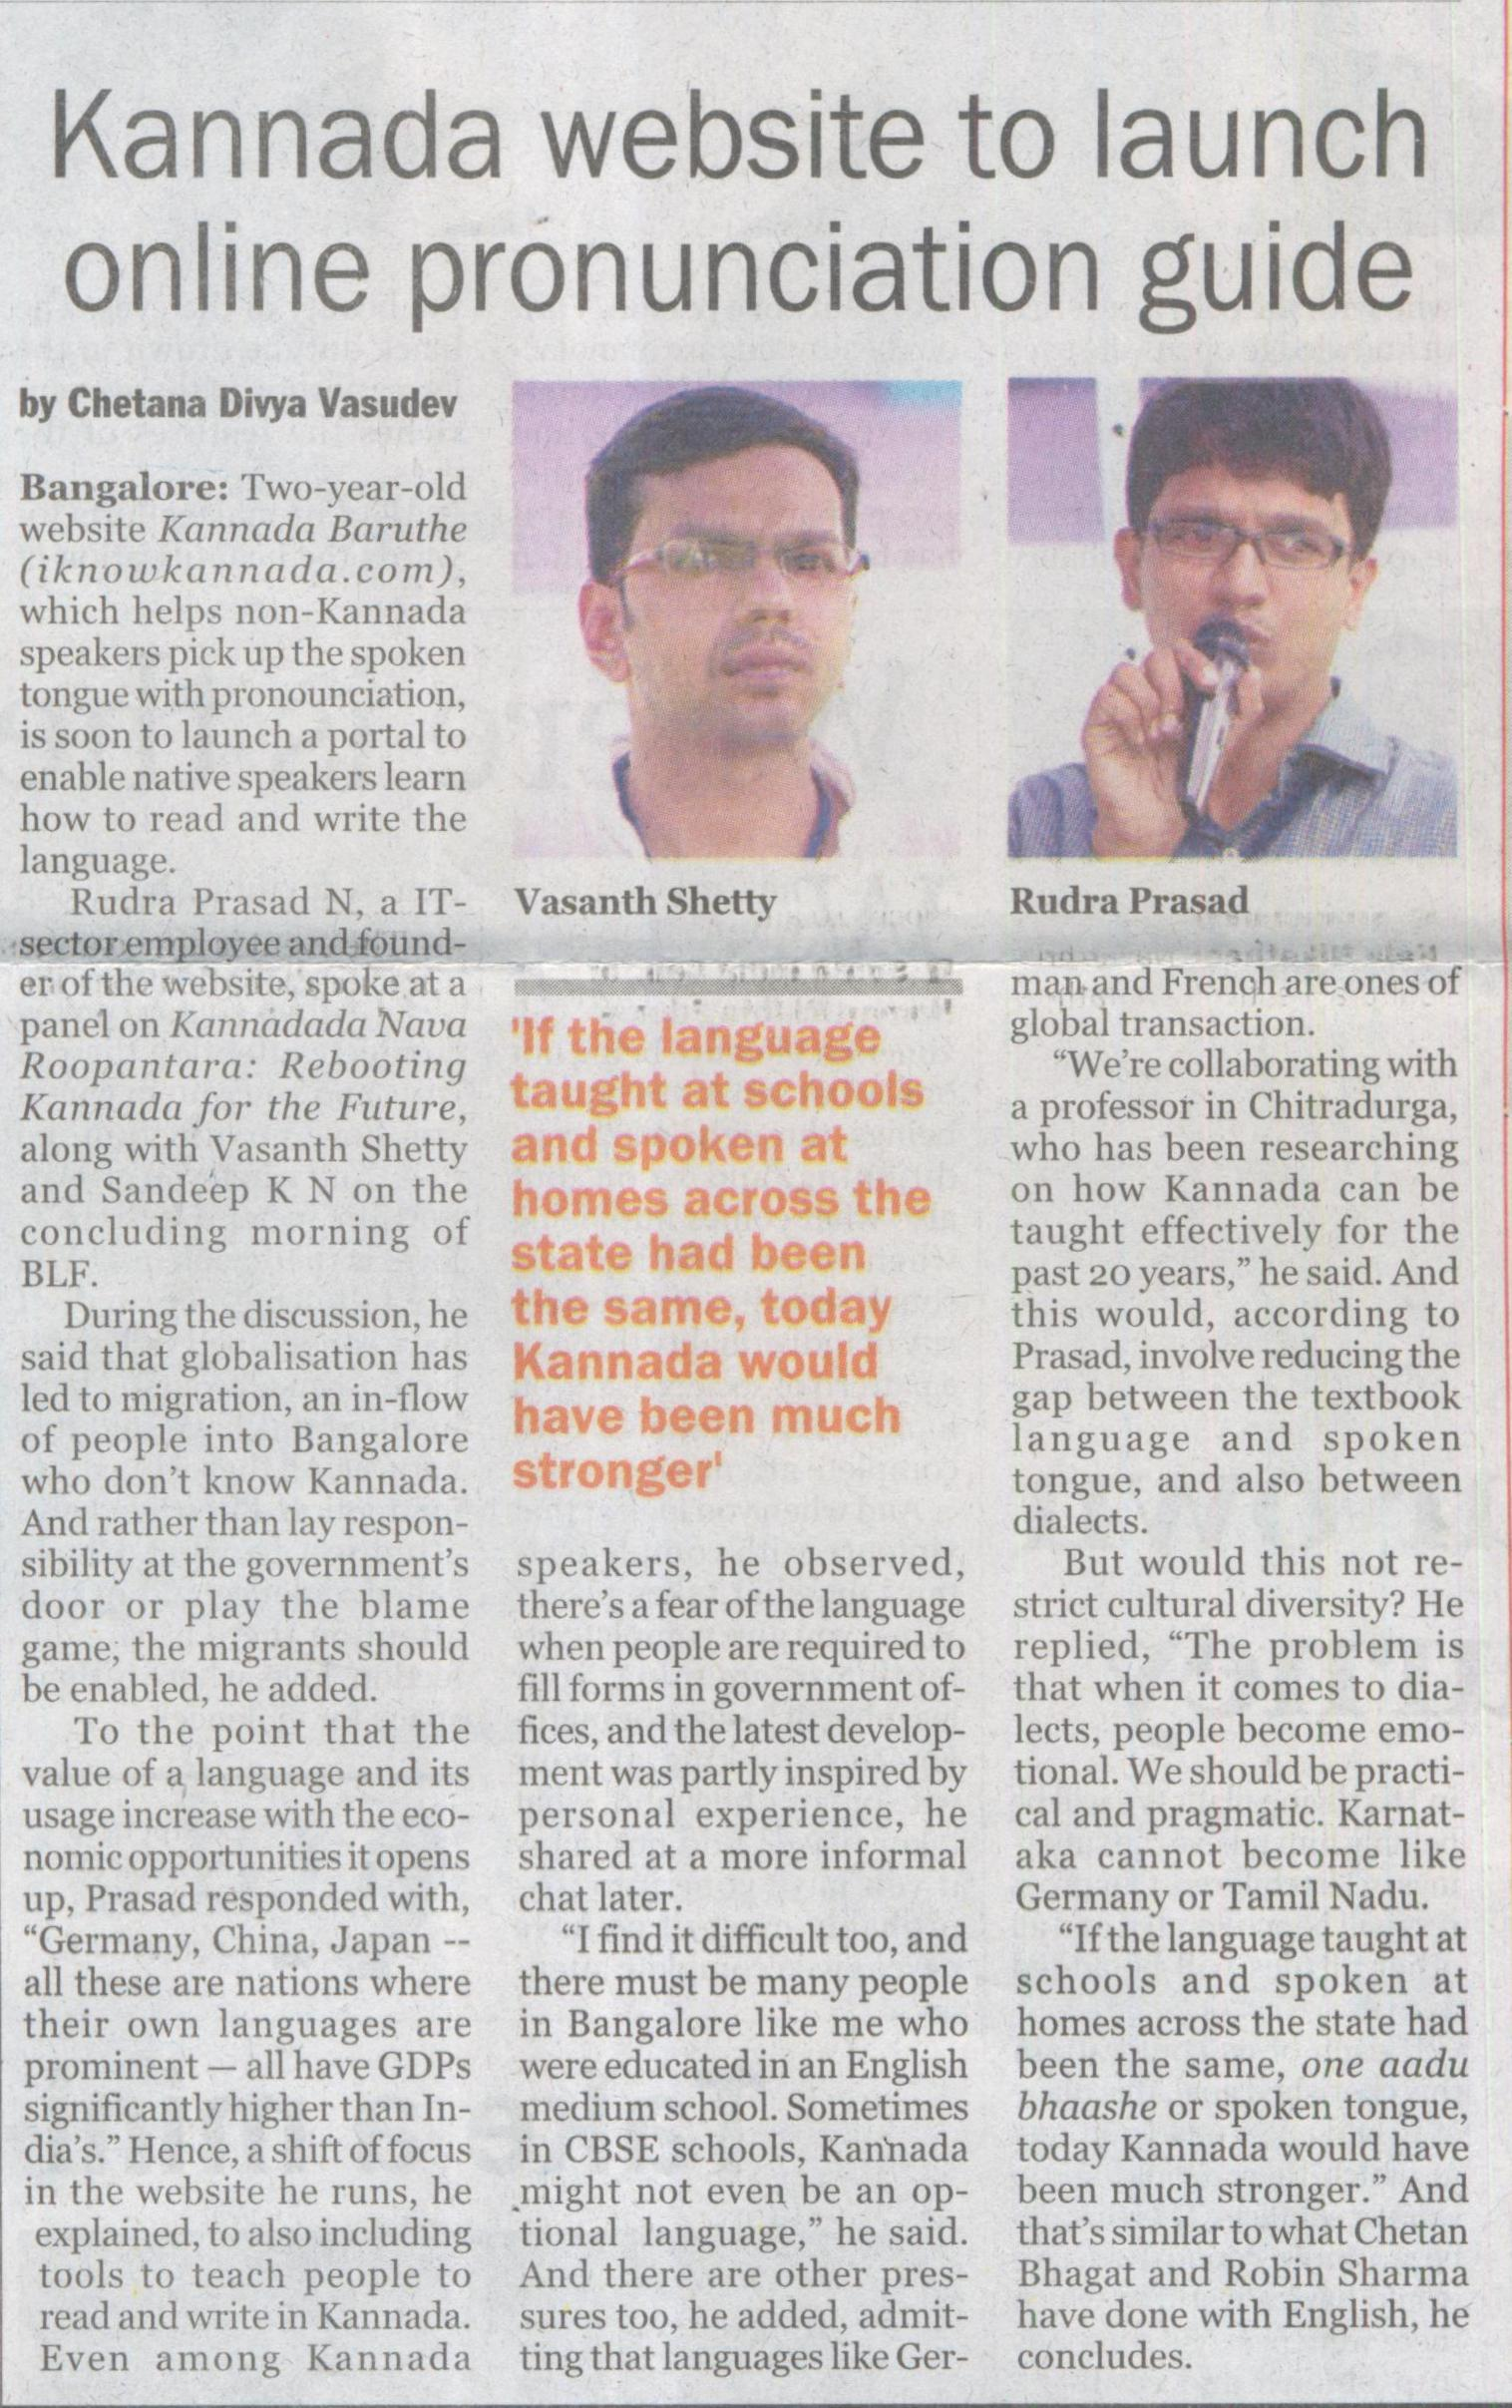 The New Indian Express, Page - 03 (City Express), Date -29.09.2014